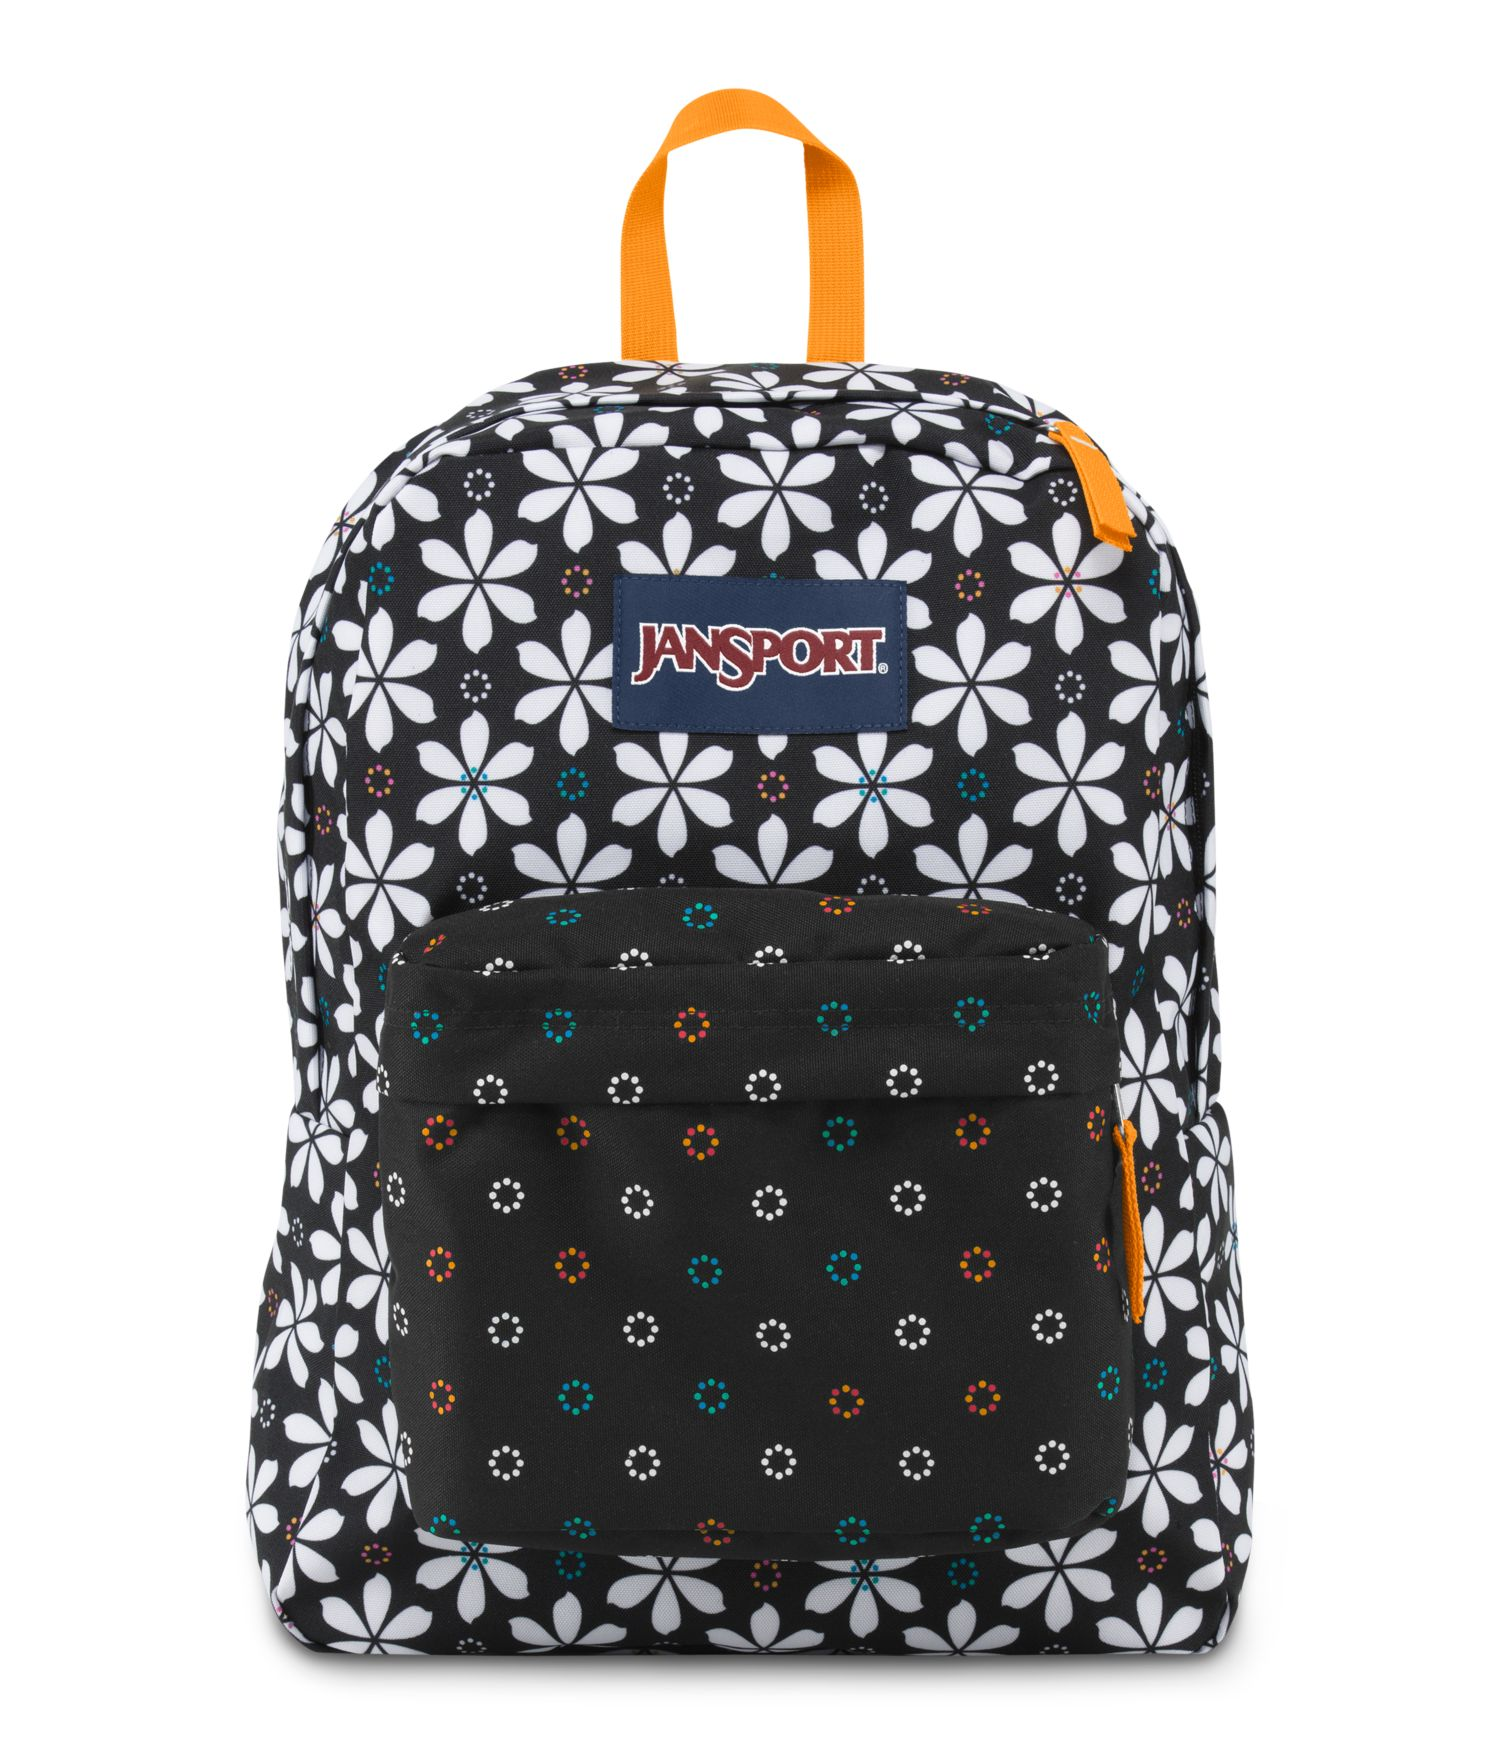 jansport superbreak school backpack - color black floral geo